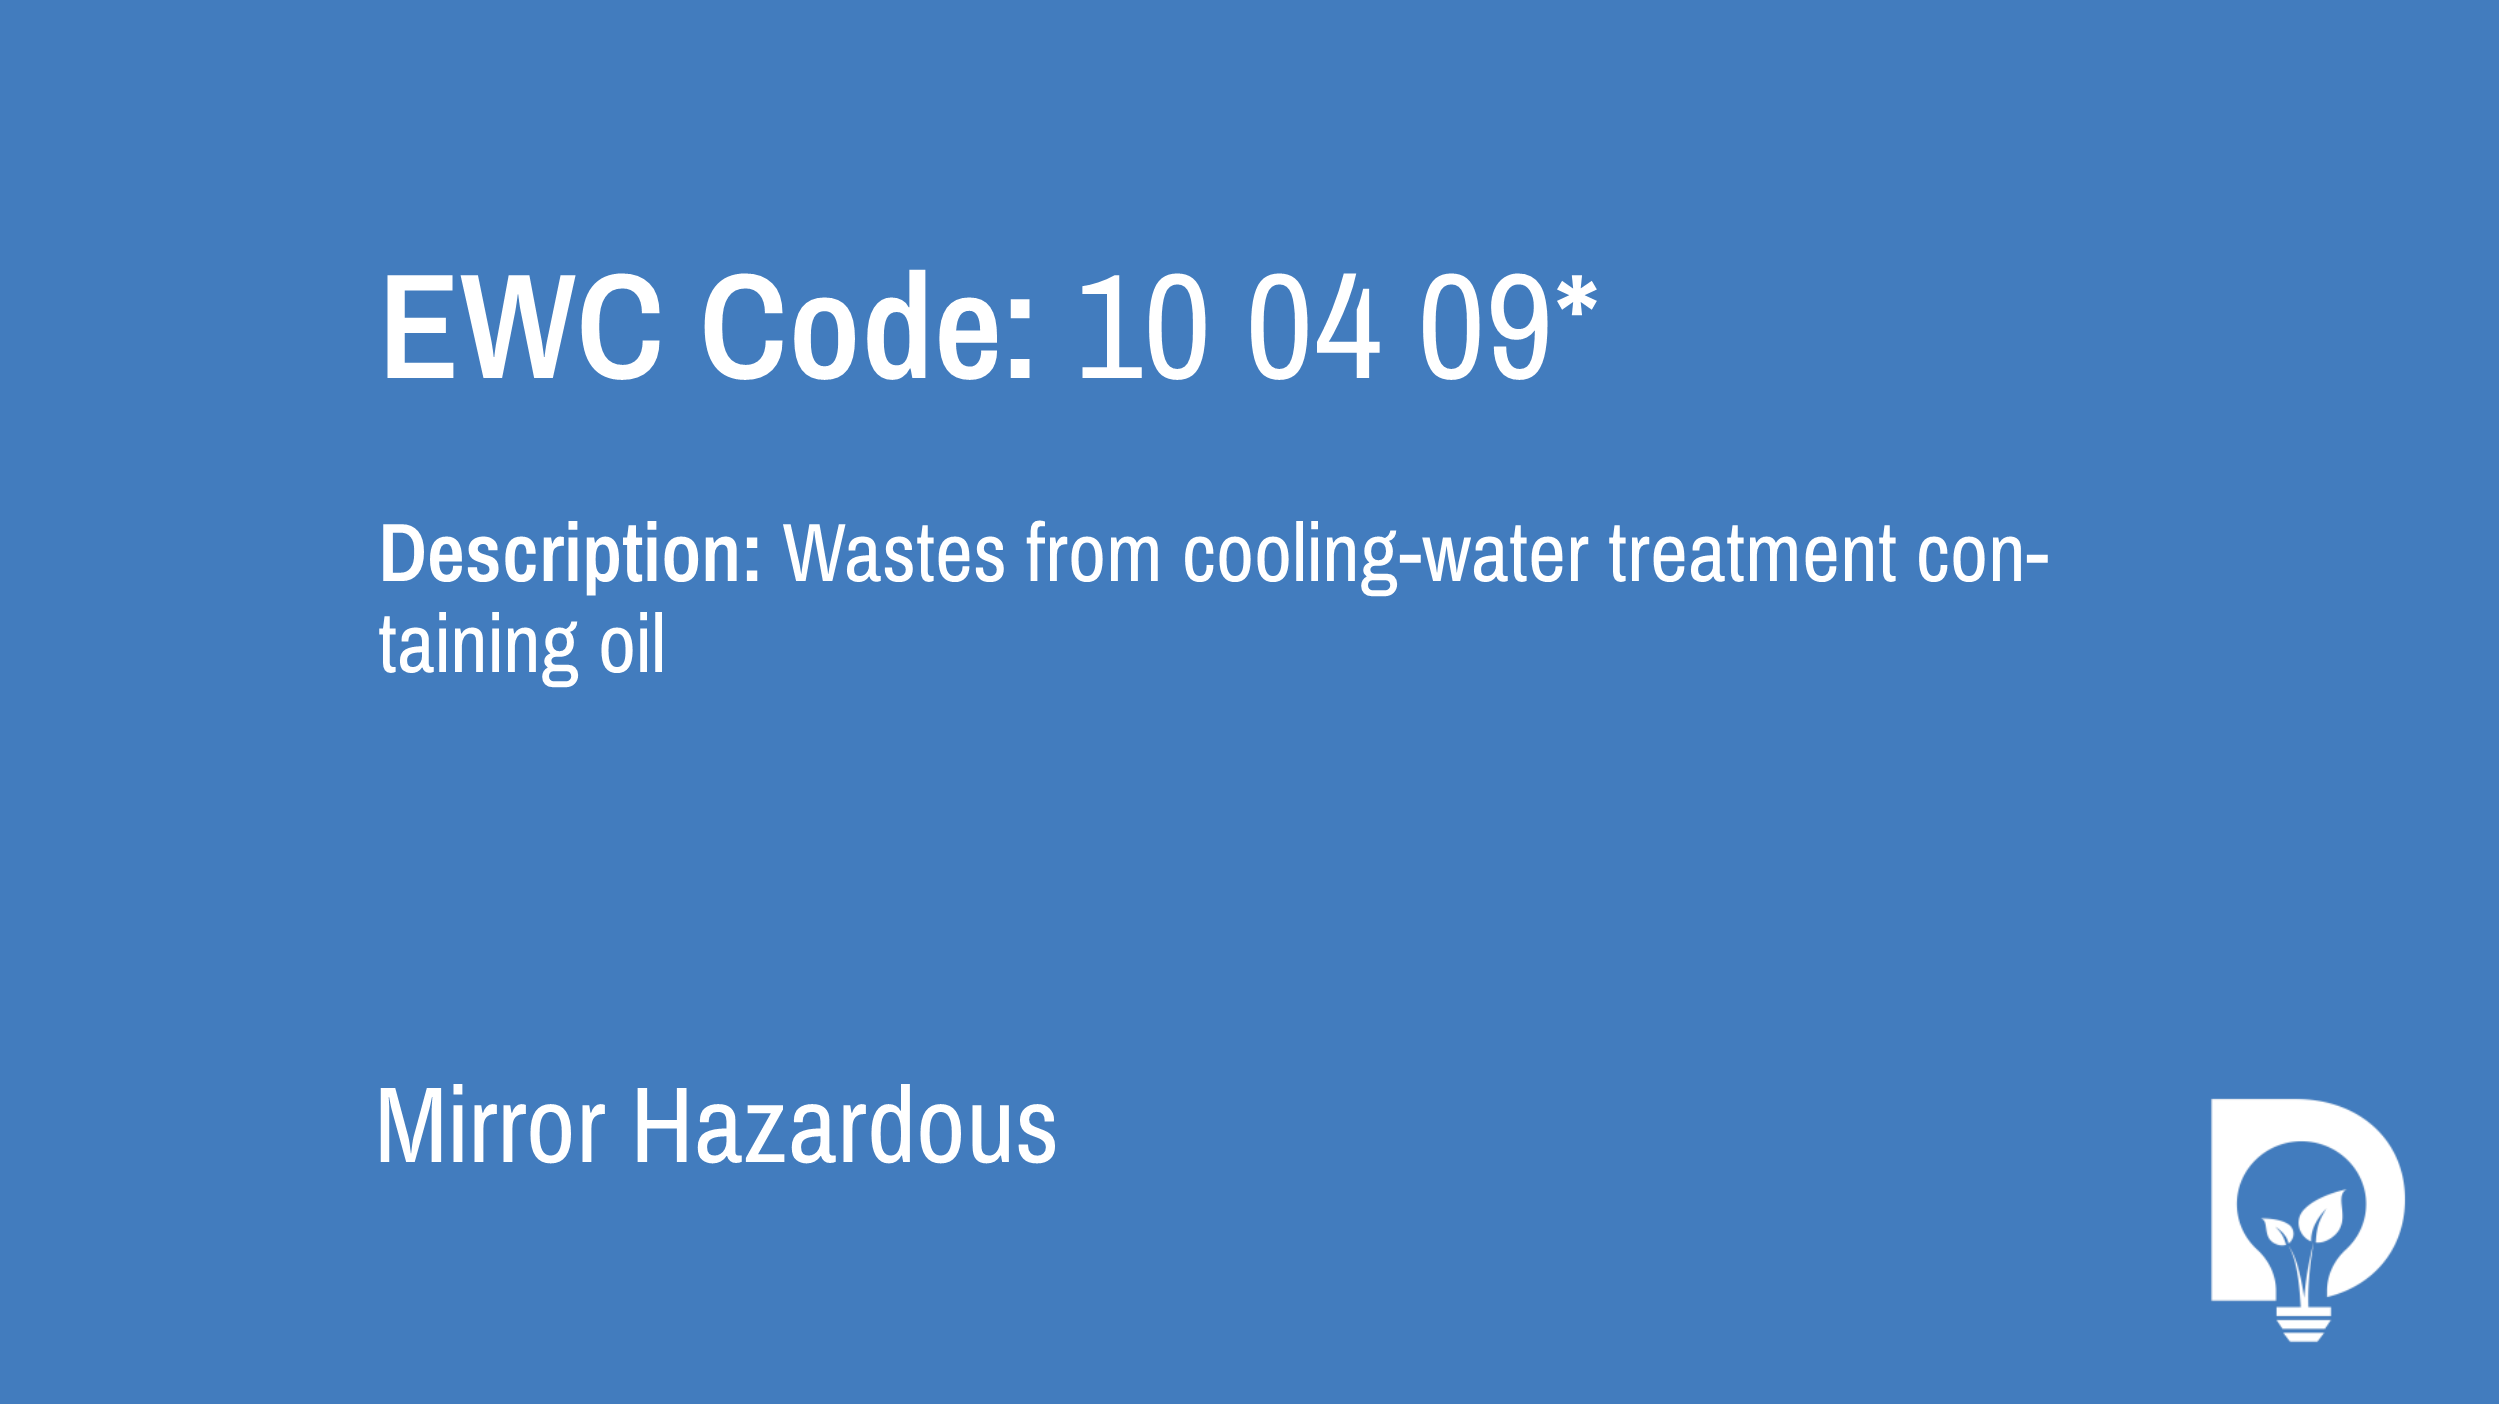 EWC Code: 10 04 09* - wastes from cooling-water treatment containing oil. Type: Mirror Hazardous. Image by Dsposal